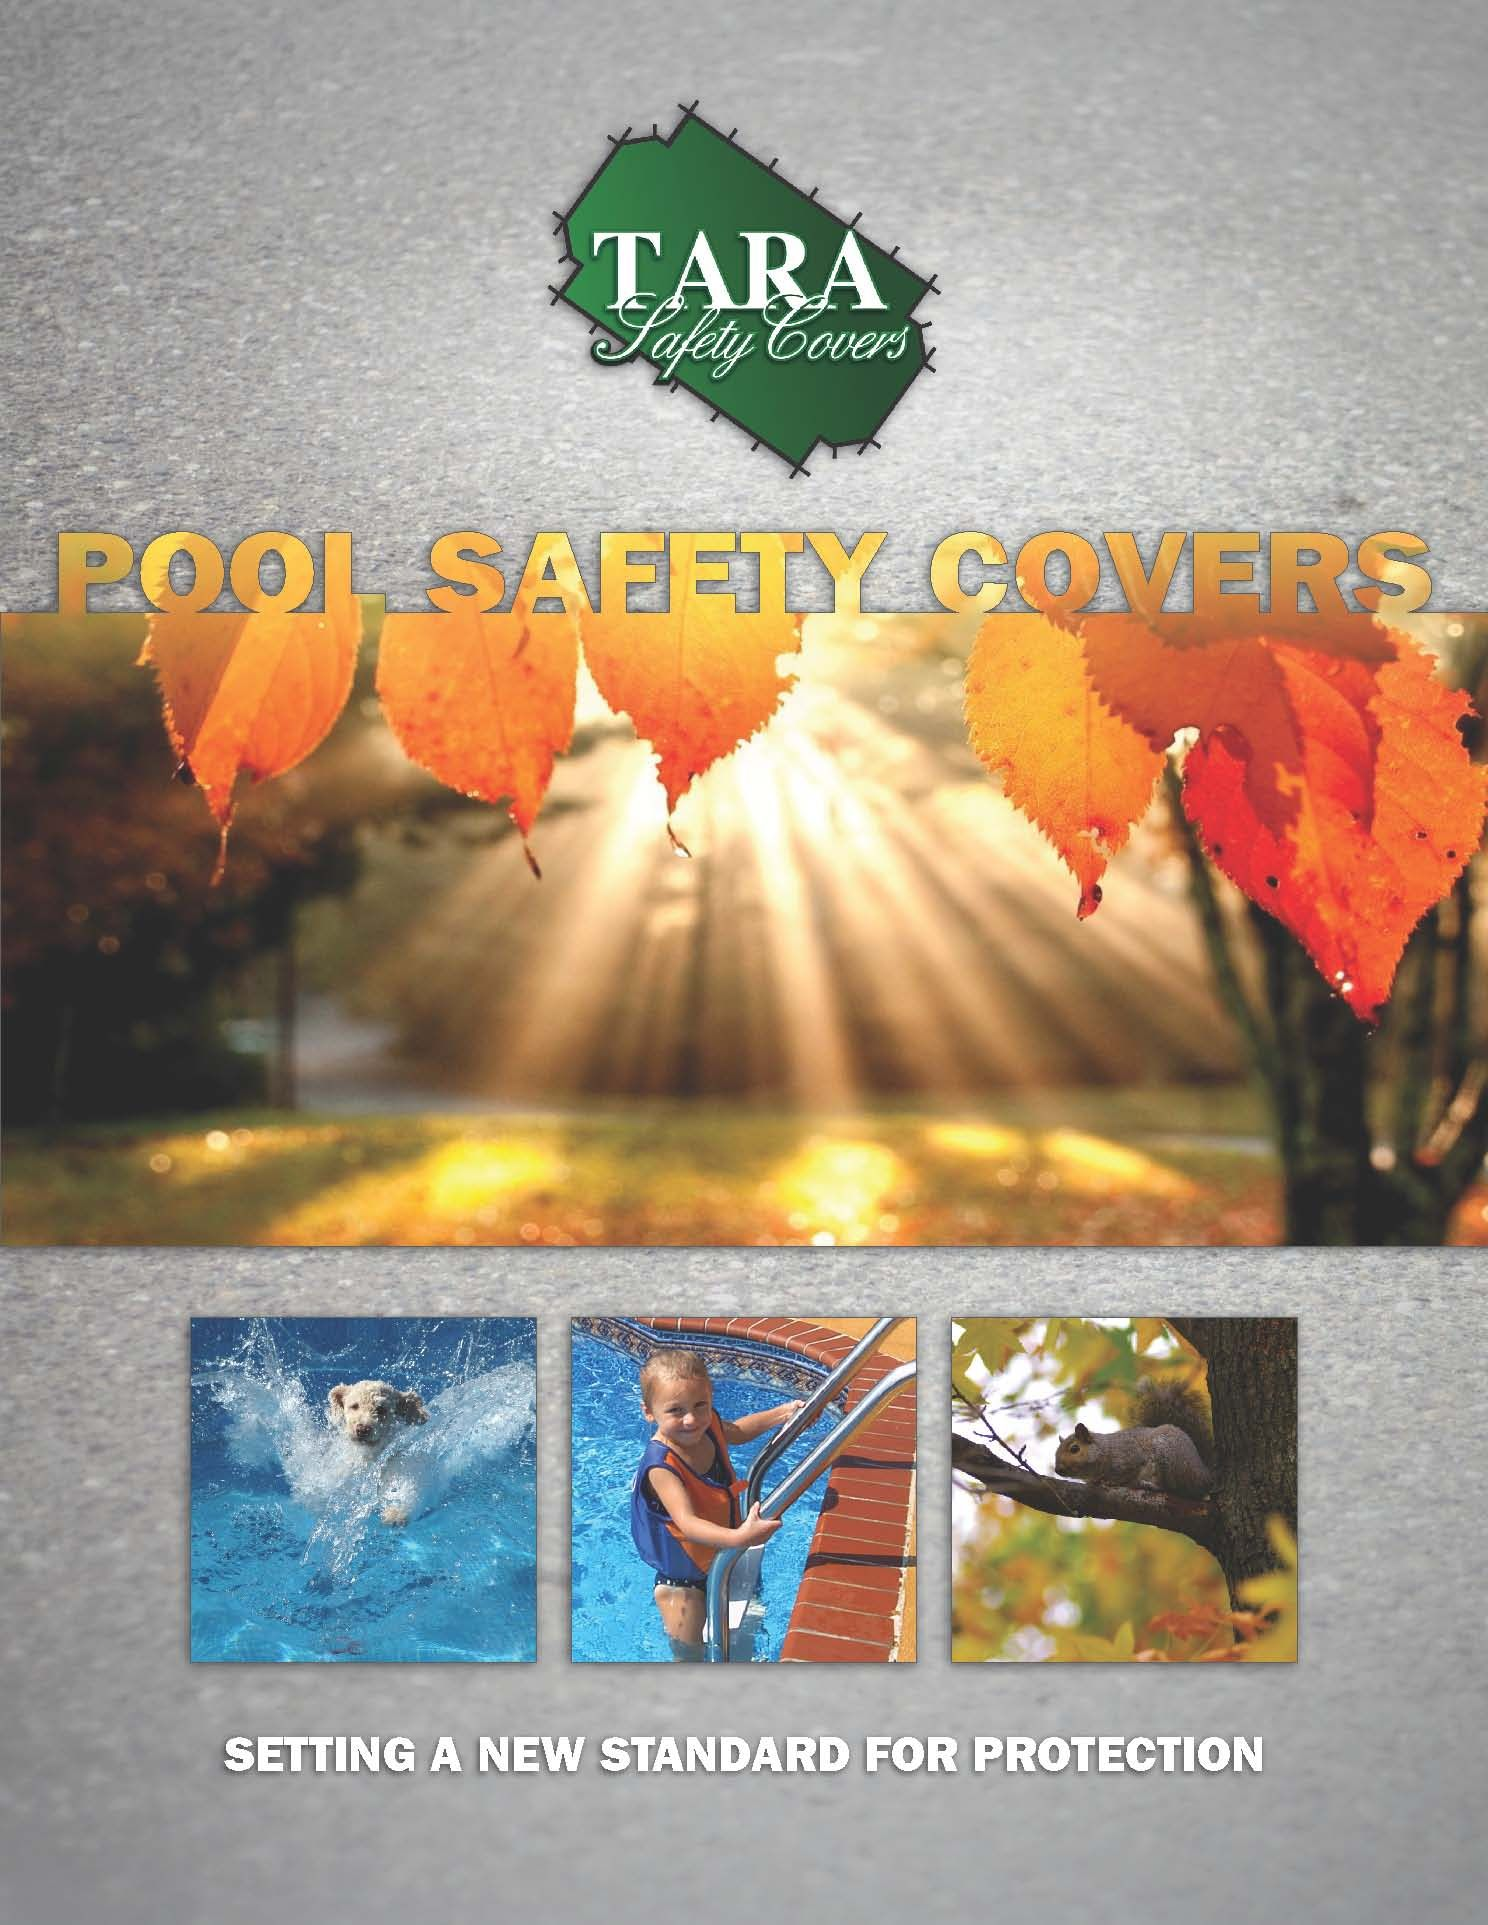 A Tara Safety Cover is the protection you need. Order Tara